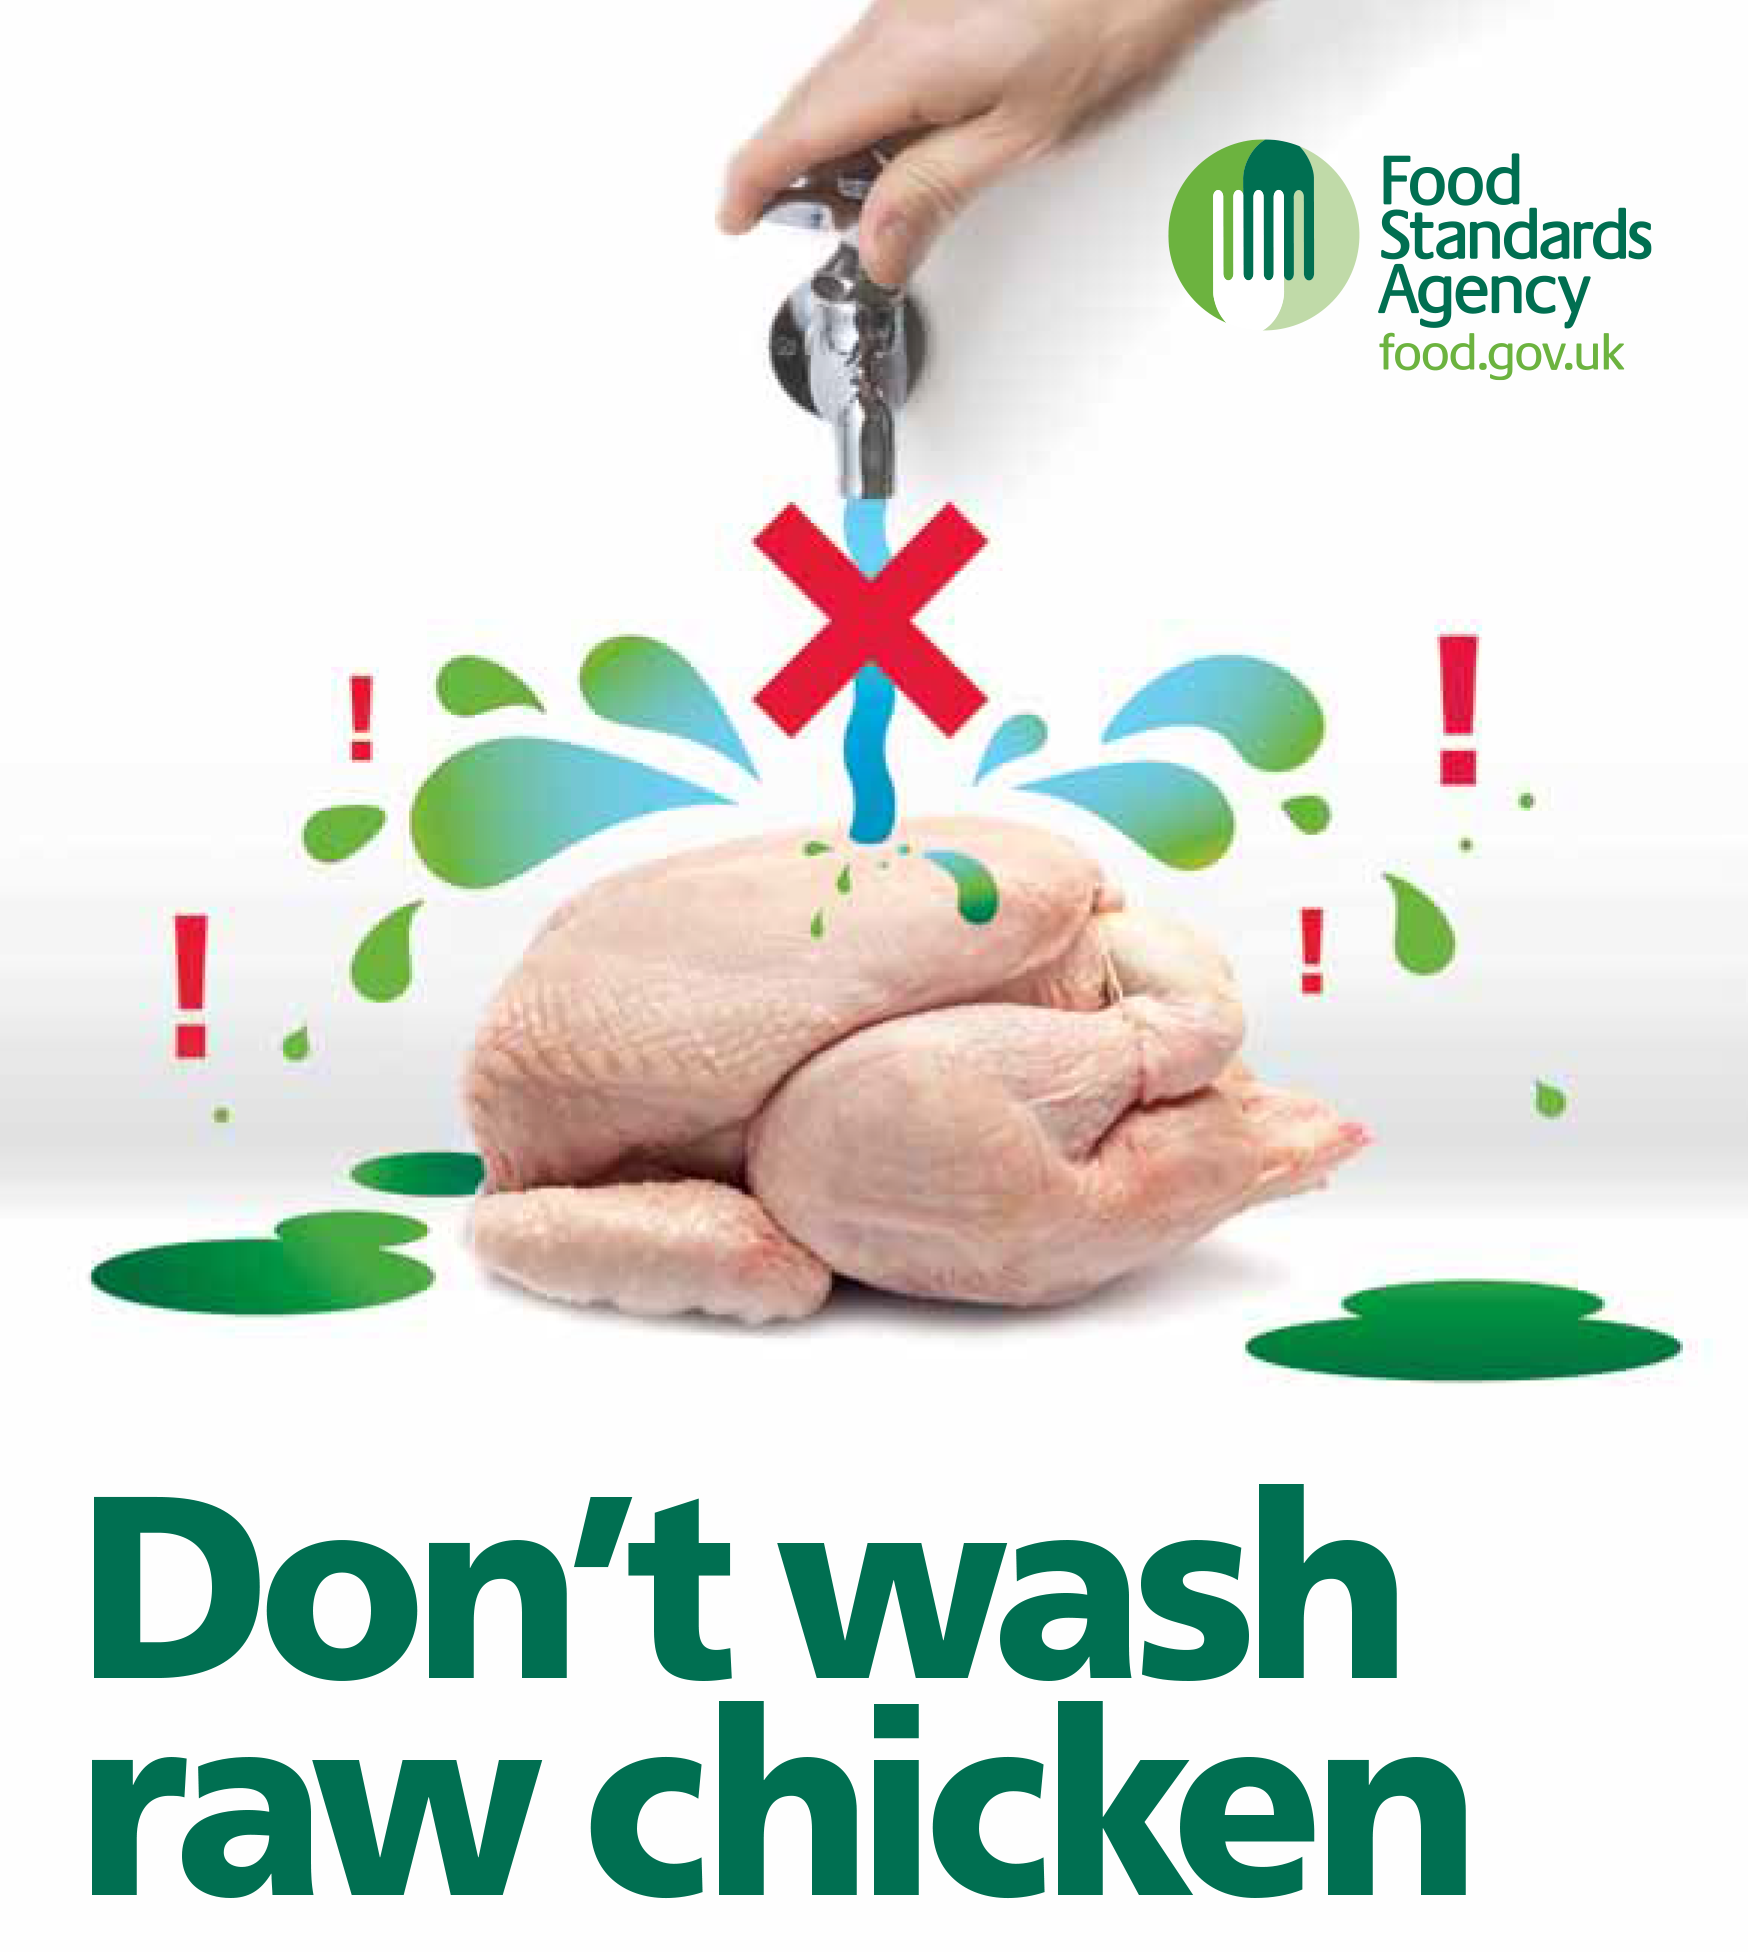 dont-wash-raw-chicken-leaflet-fsa-1